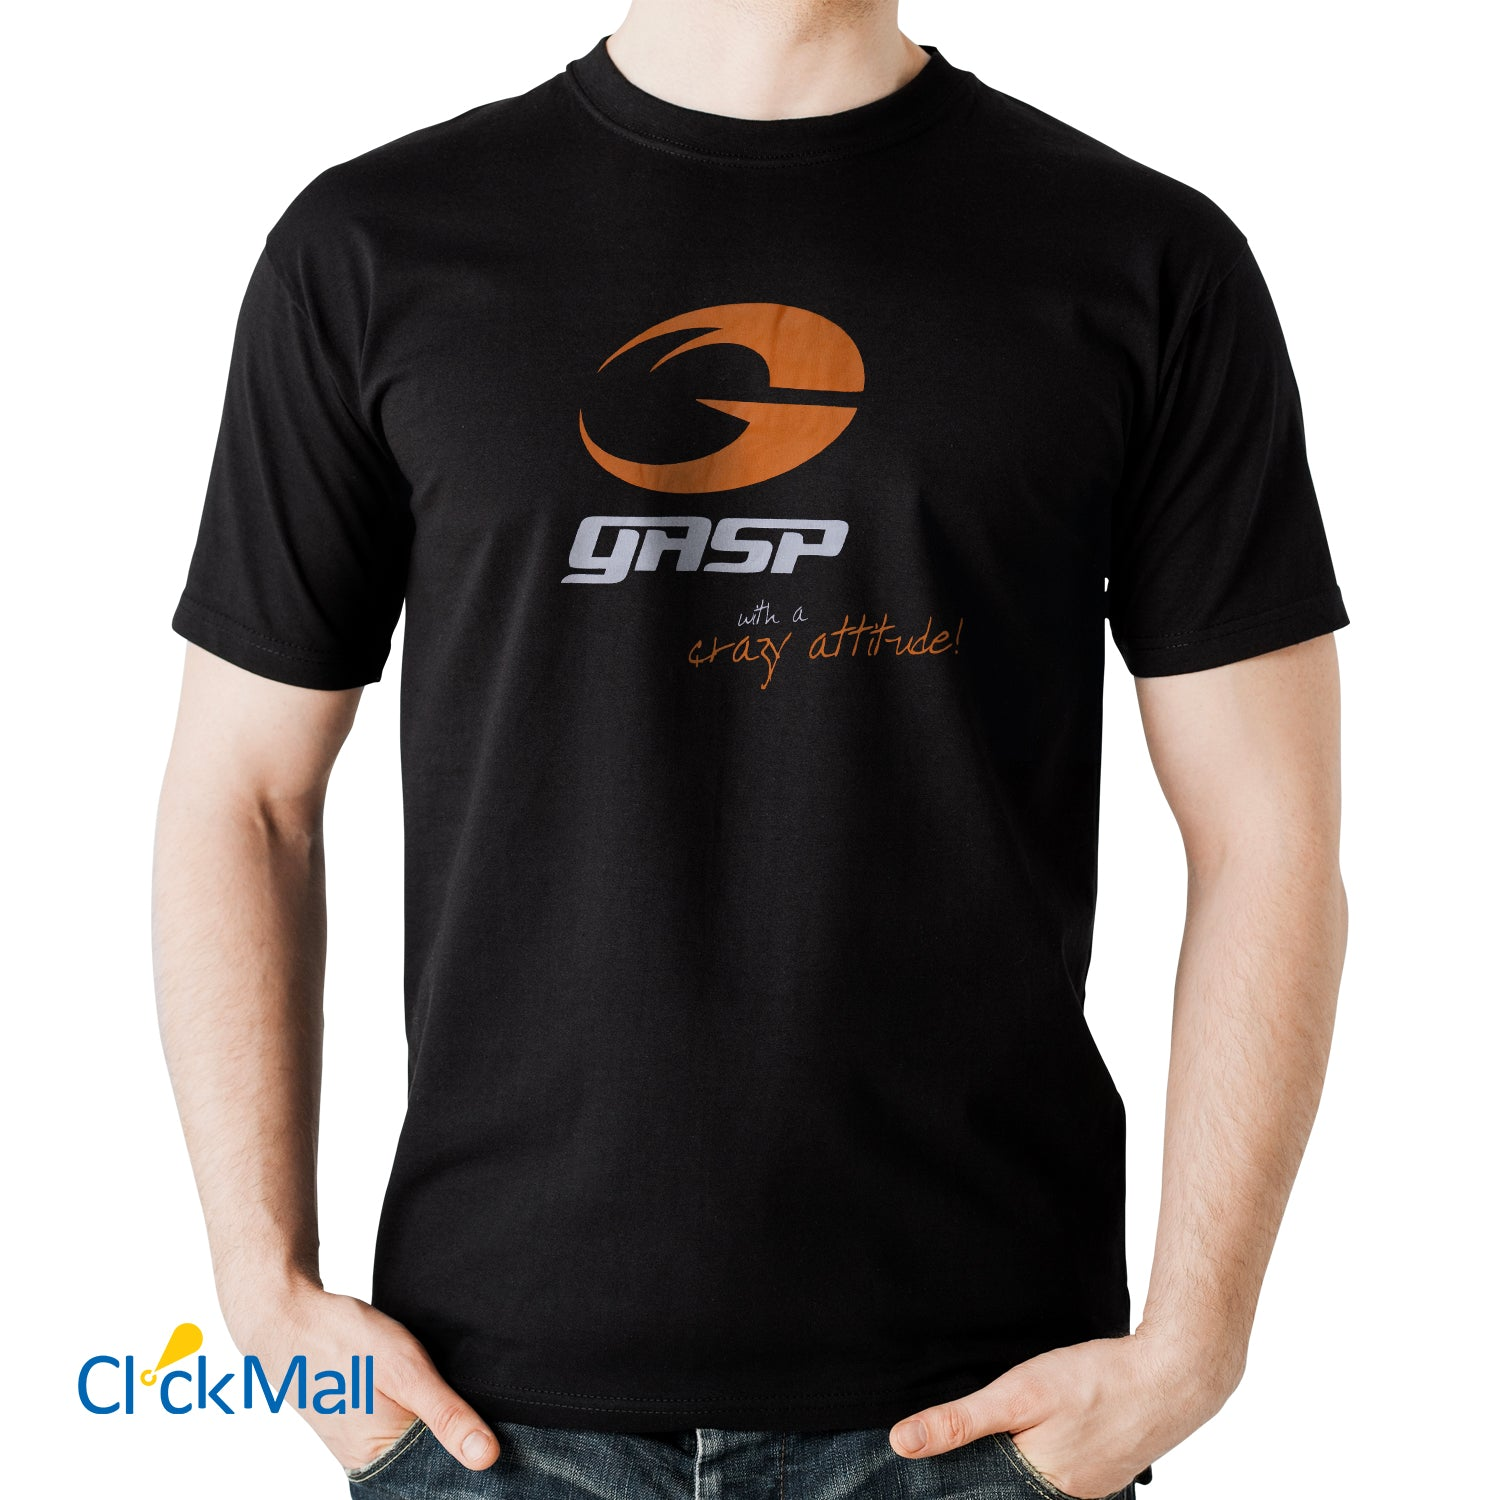 Time Line Black GASP Printed Polyester Sports T Shirt for Men